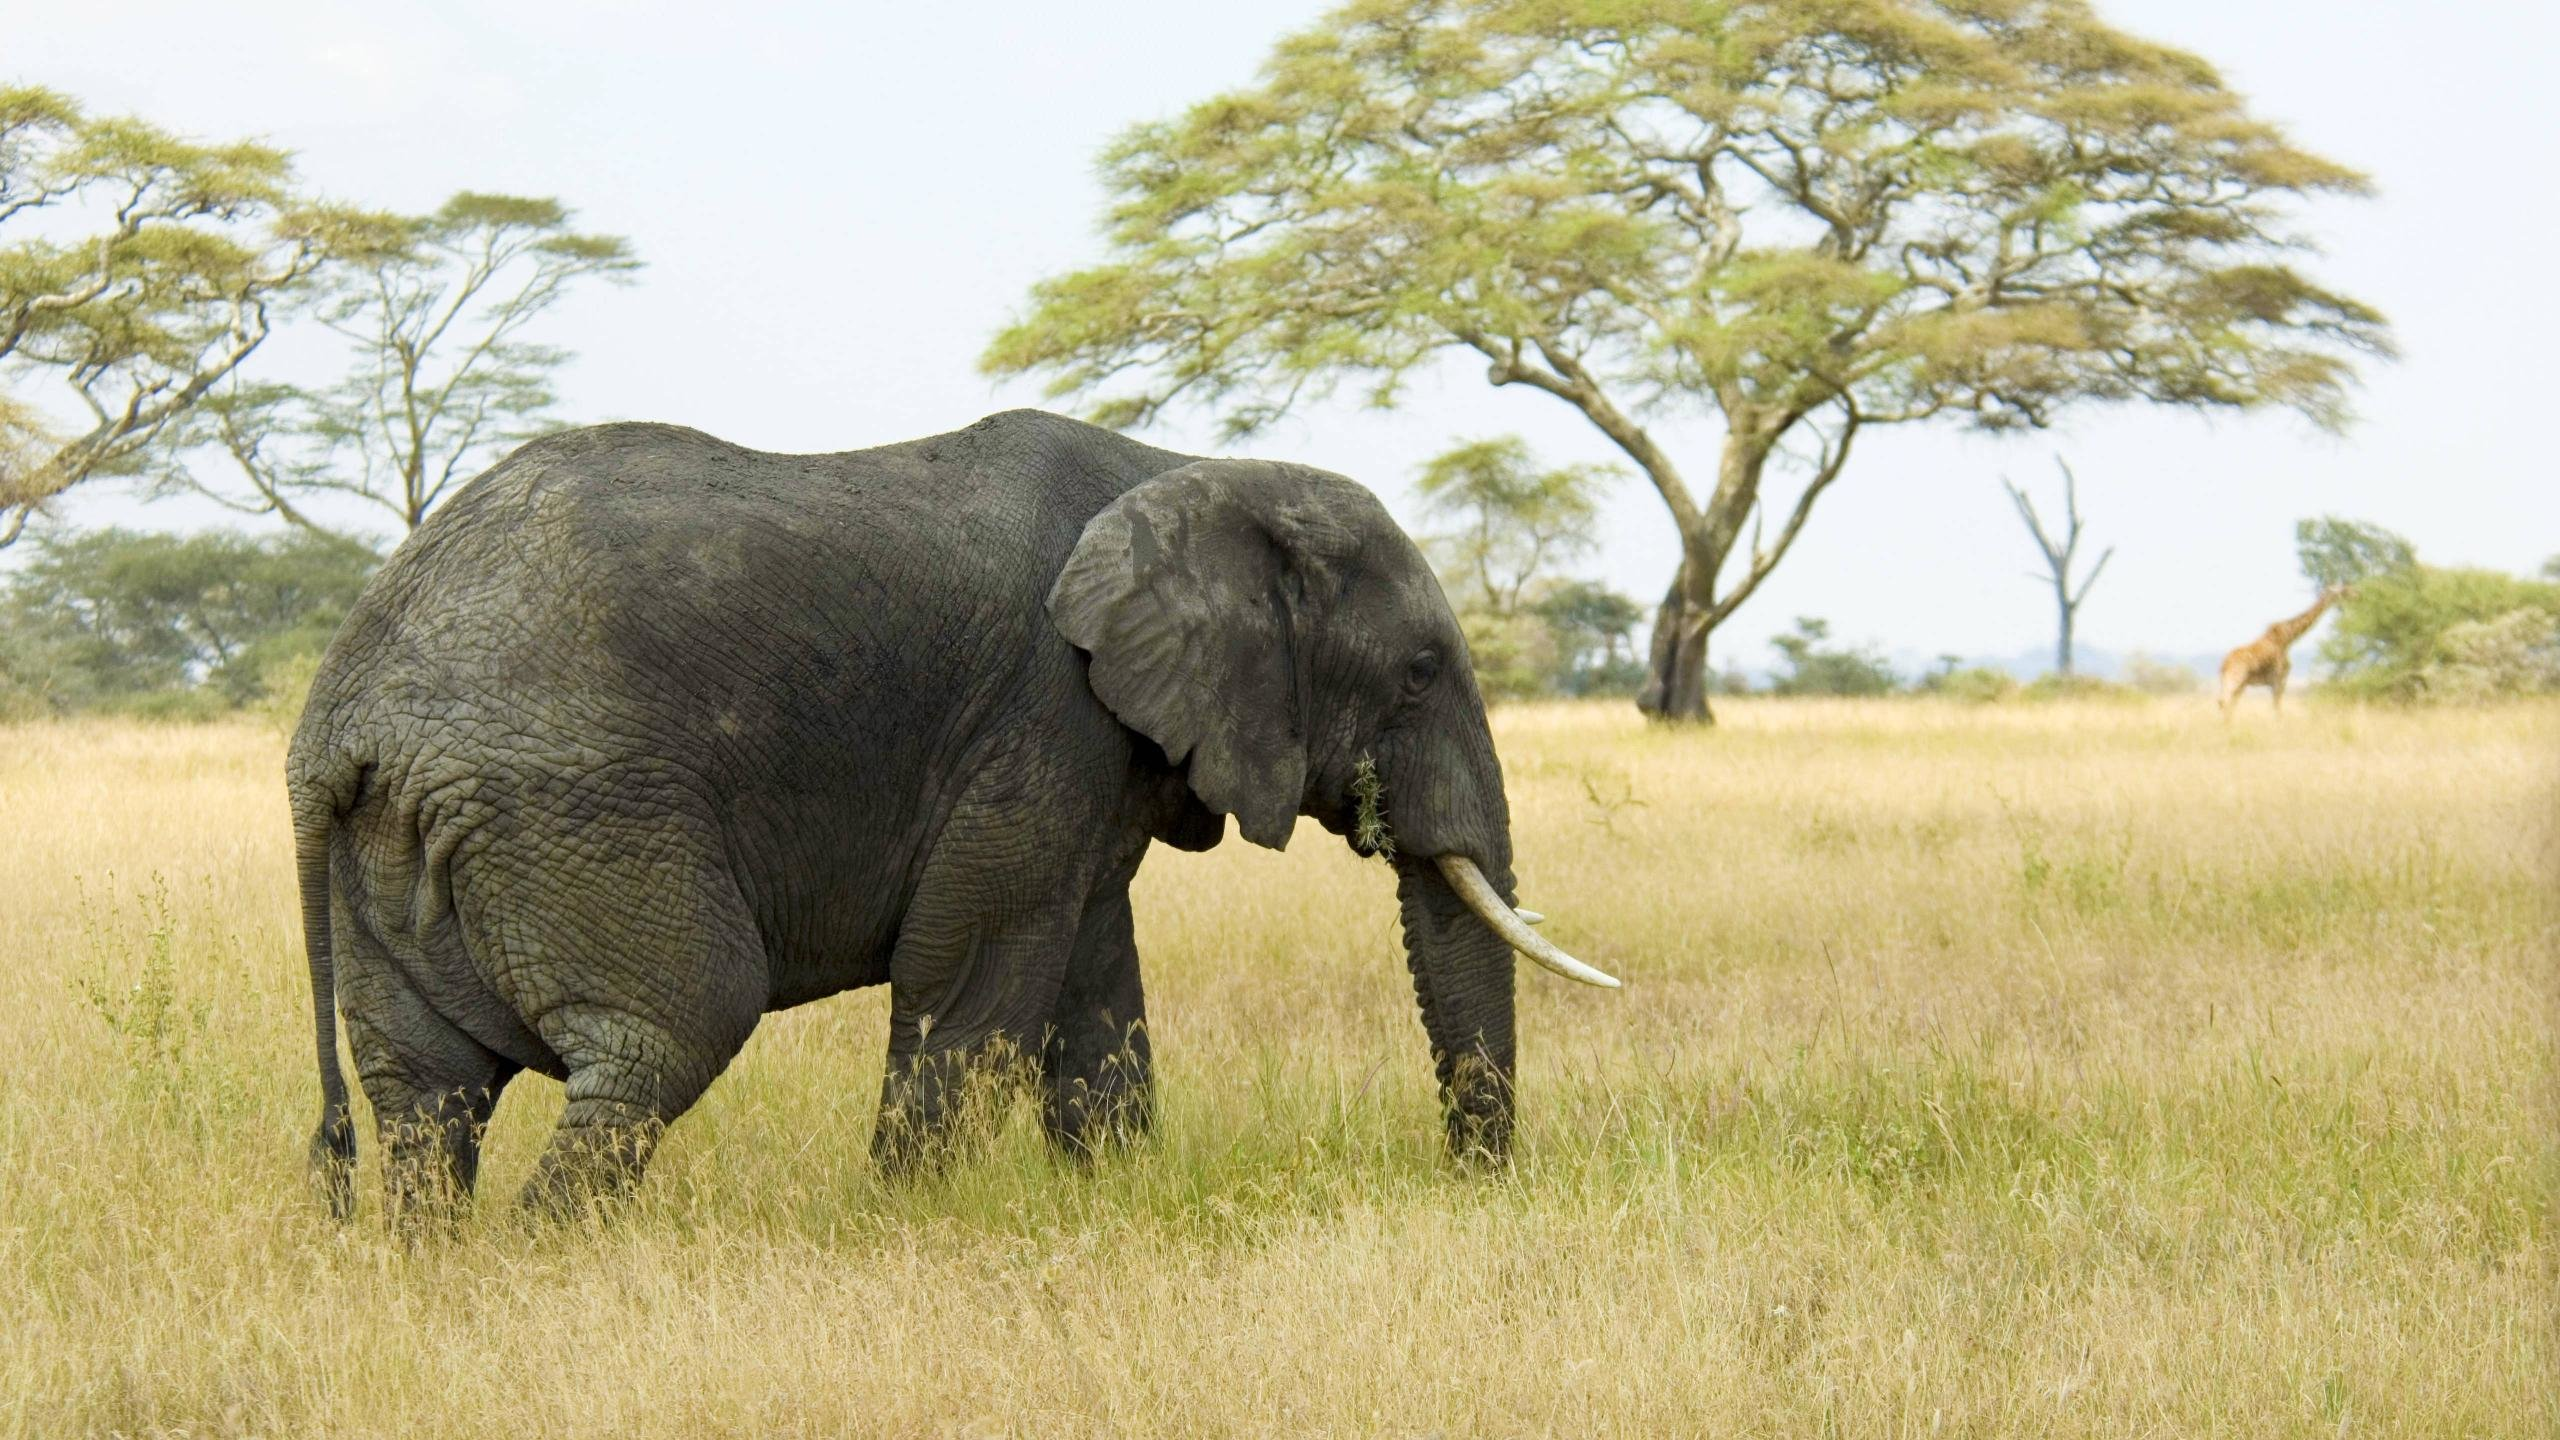 High resolution Elephant hd 2560x1440 background ID:132560 for desktop